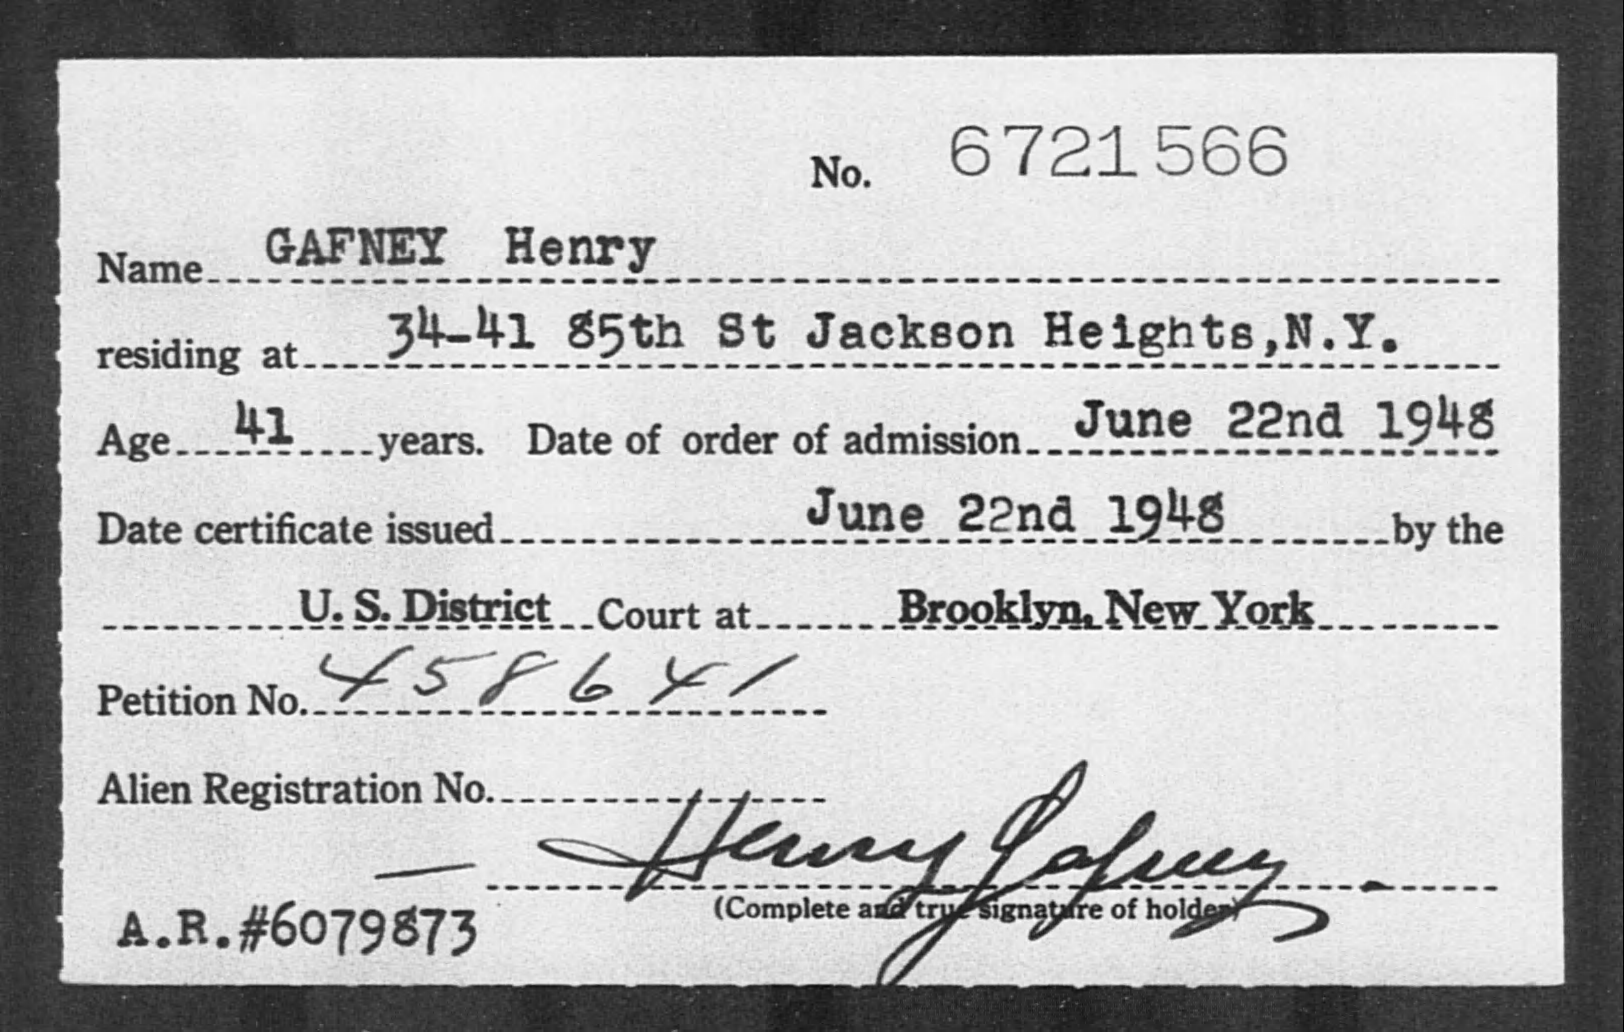 GAFNEY Henry - Born: [BLANK], Naturalized: 1948